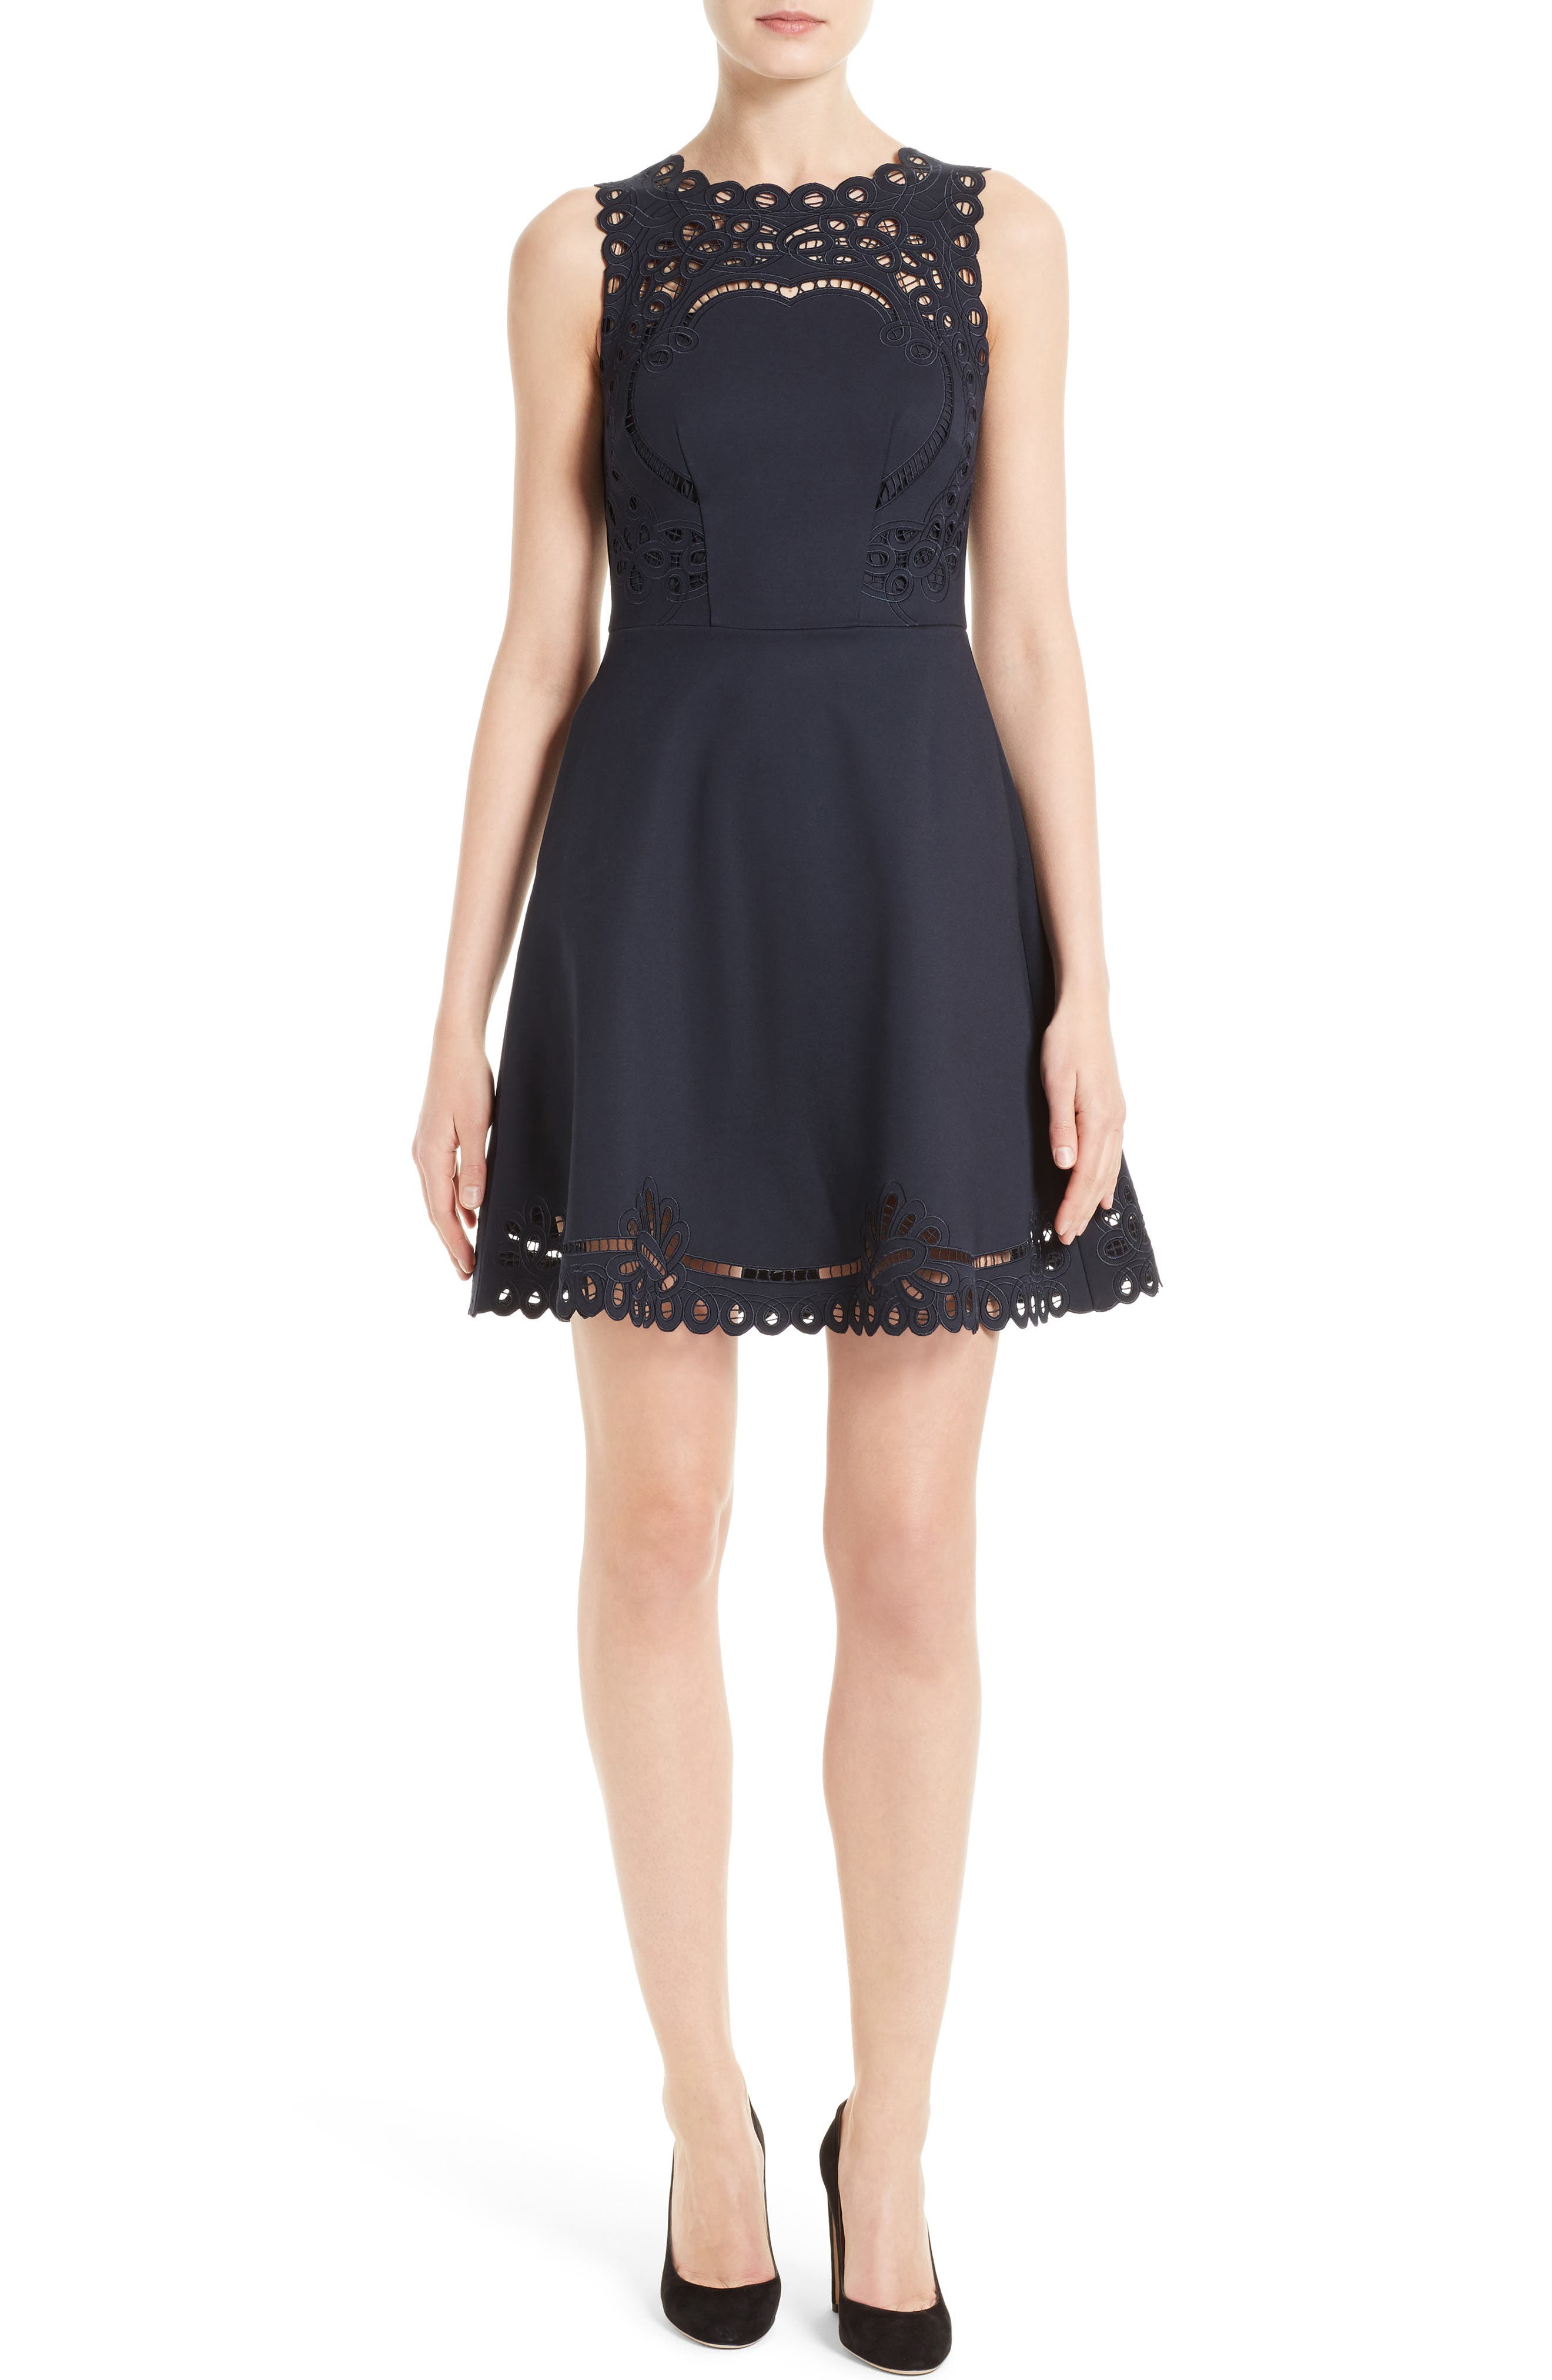 TED BAKER LONDON Verony Eyelet Fit & Flare Dress, Main, color, 402